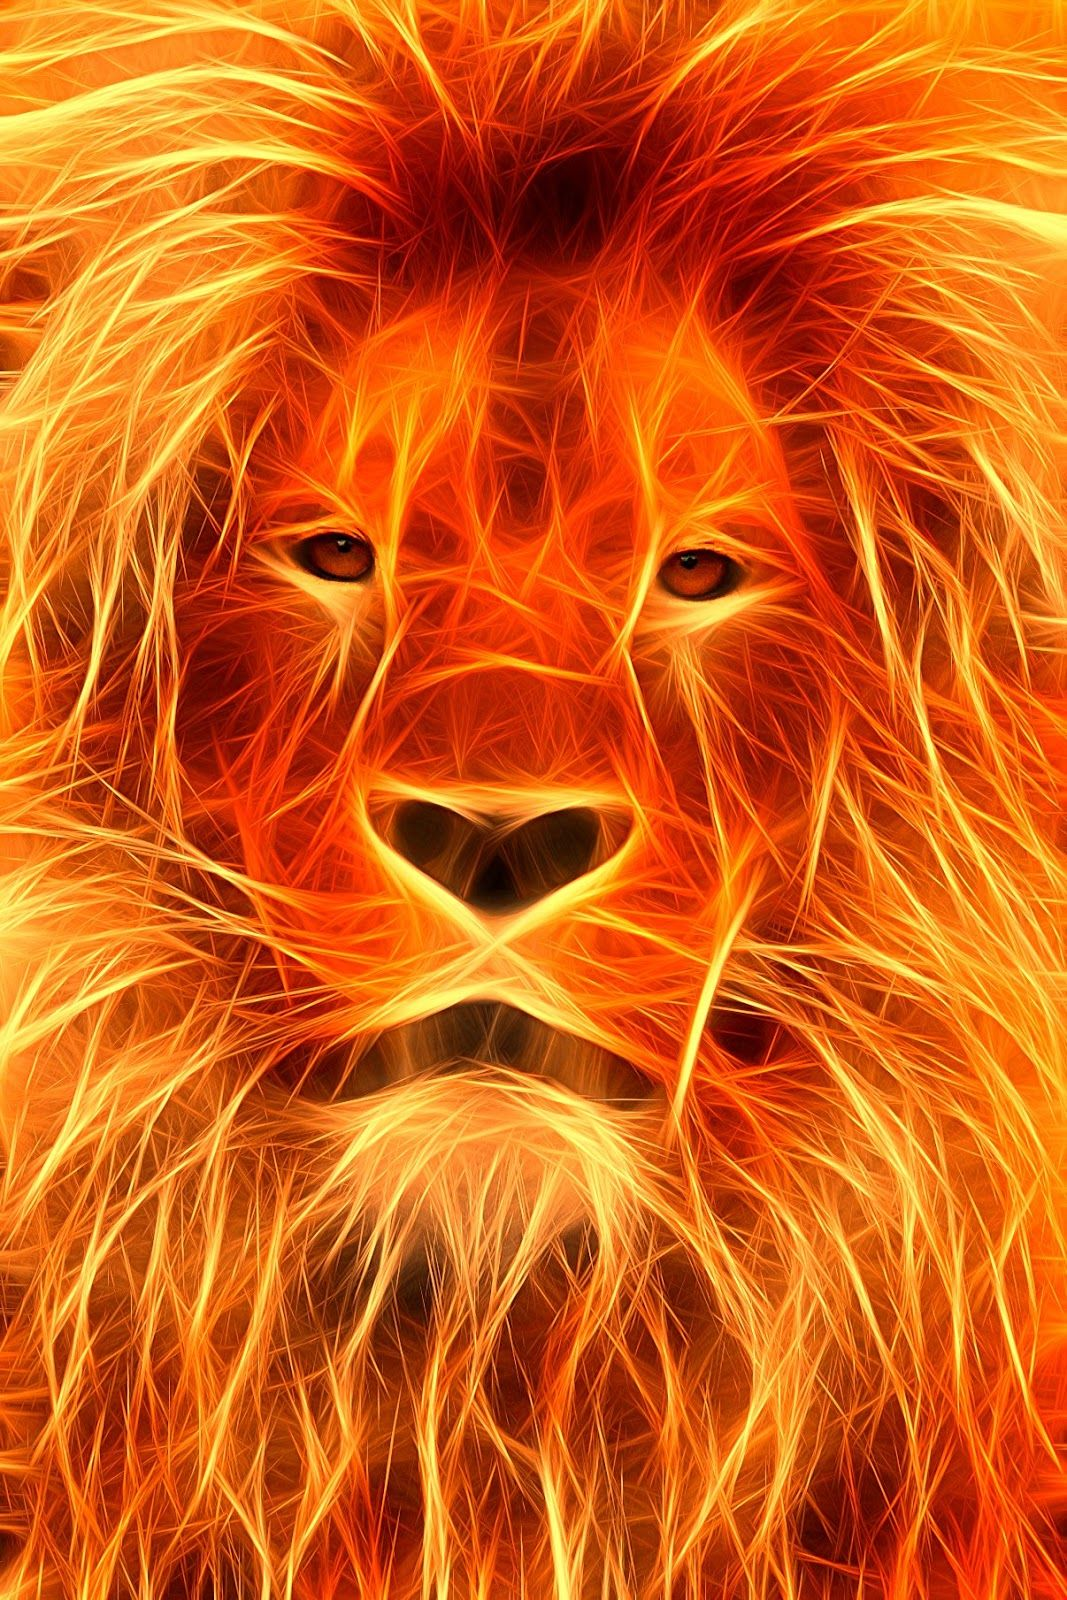 The Fire Lion Fire Lion Lion Images Lion Art